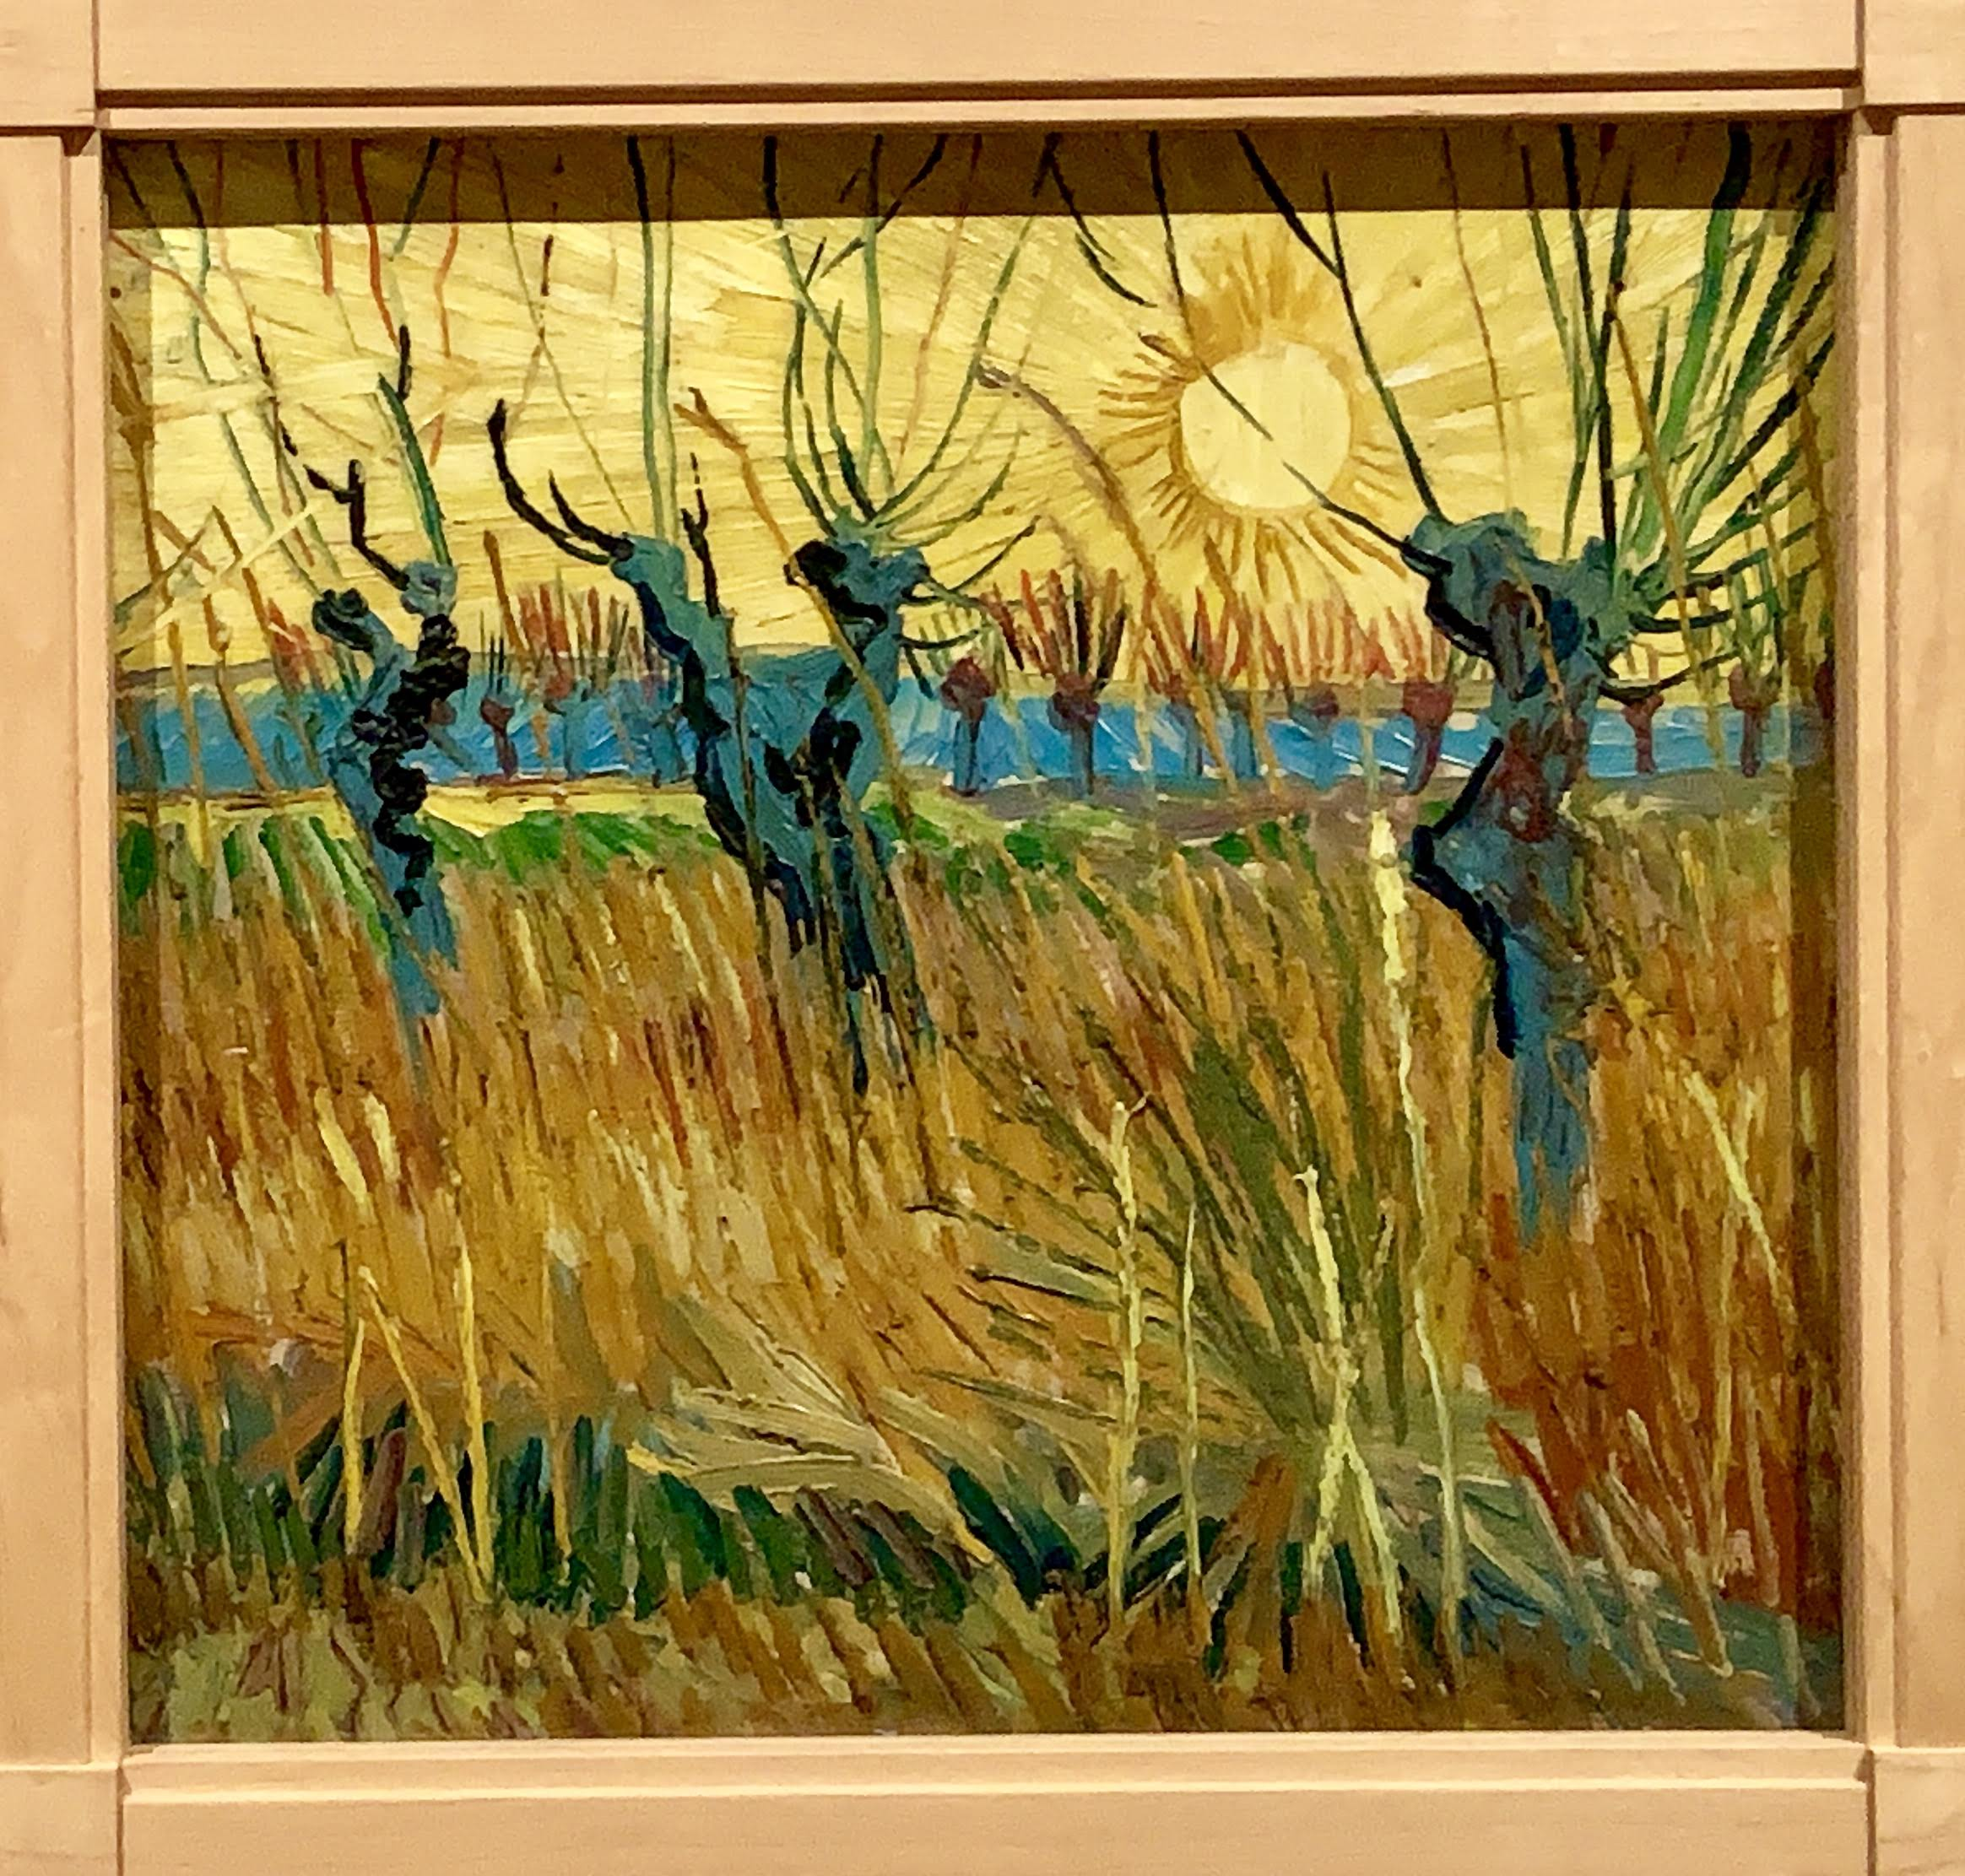 Vincent van Gogh - Pollard willows at sunset, 1888